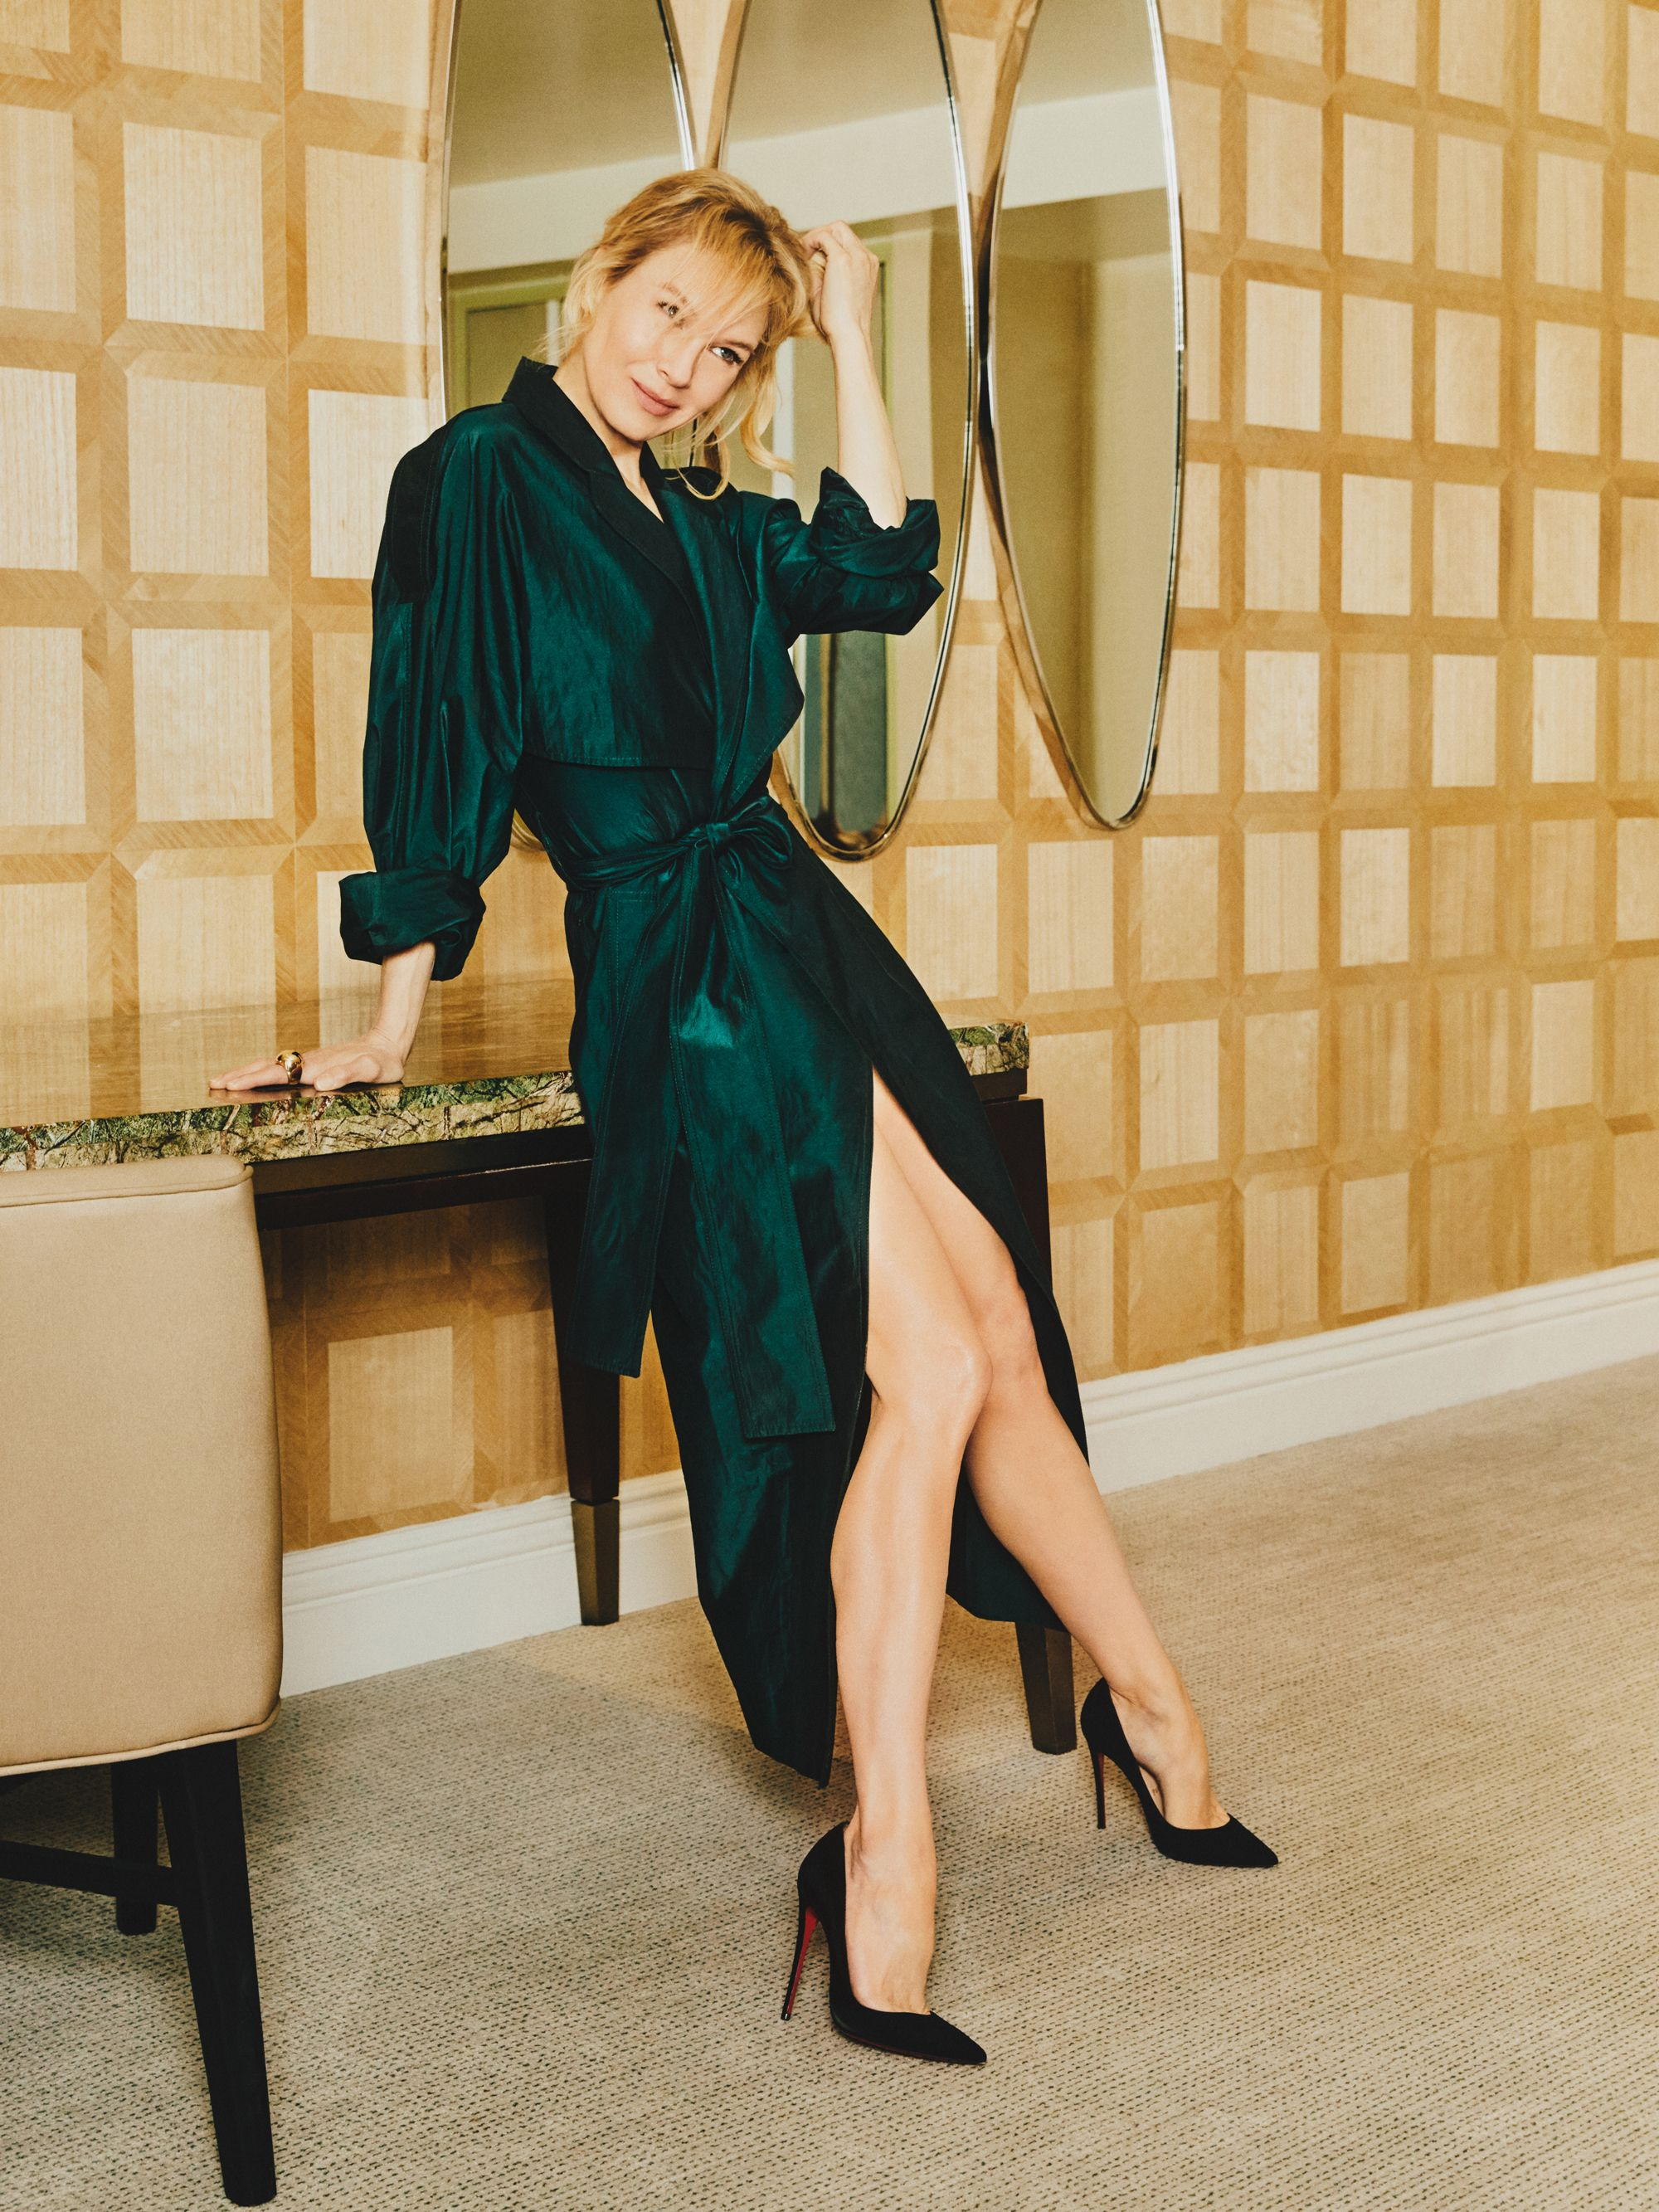 Zellweger wears a Victoria Beckham green trench dress, Cartier rings, and Christian Louboutin suede pumps.